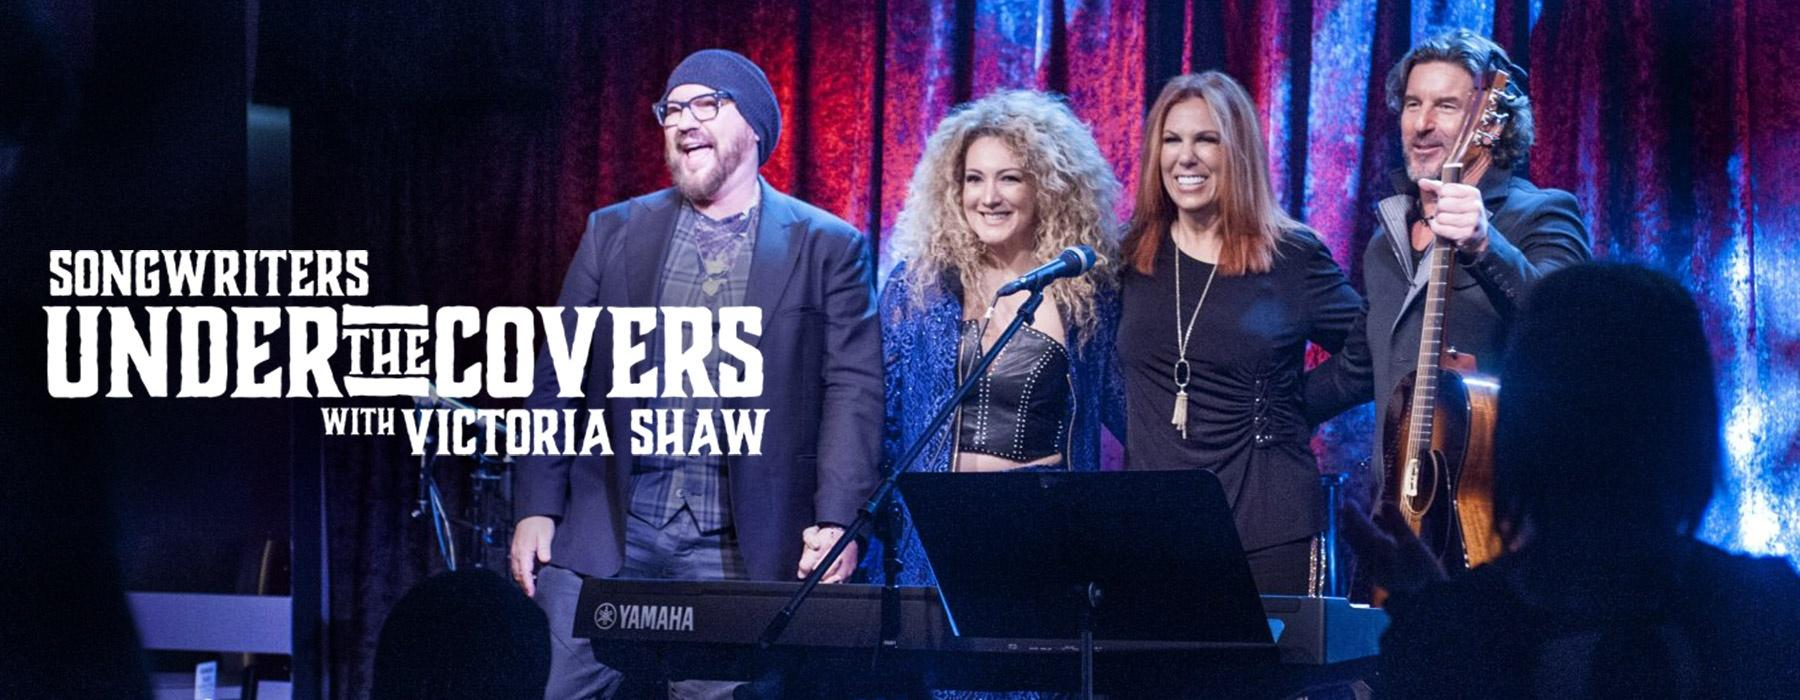 Songwriter's Under the Covers with Victoria Shaw on NPT